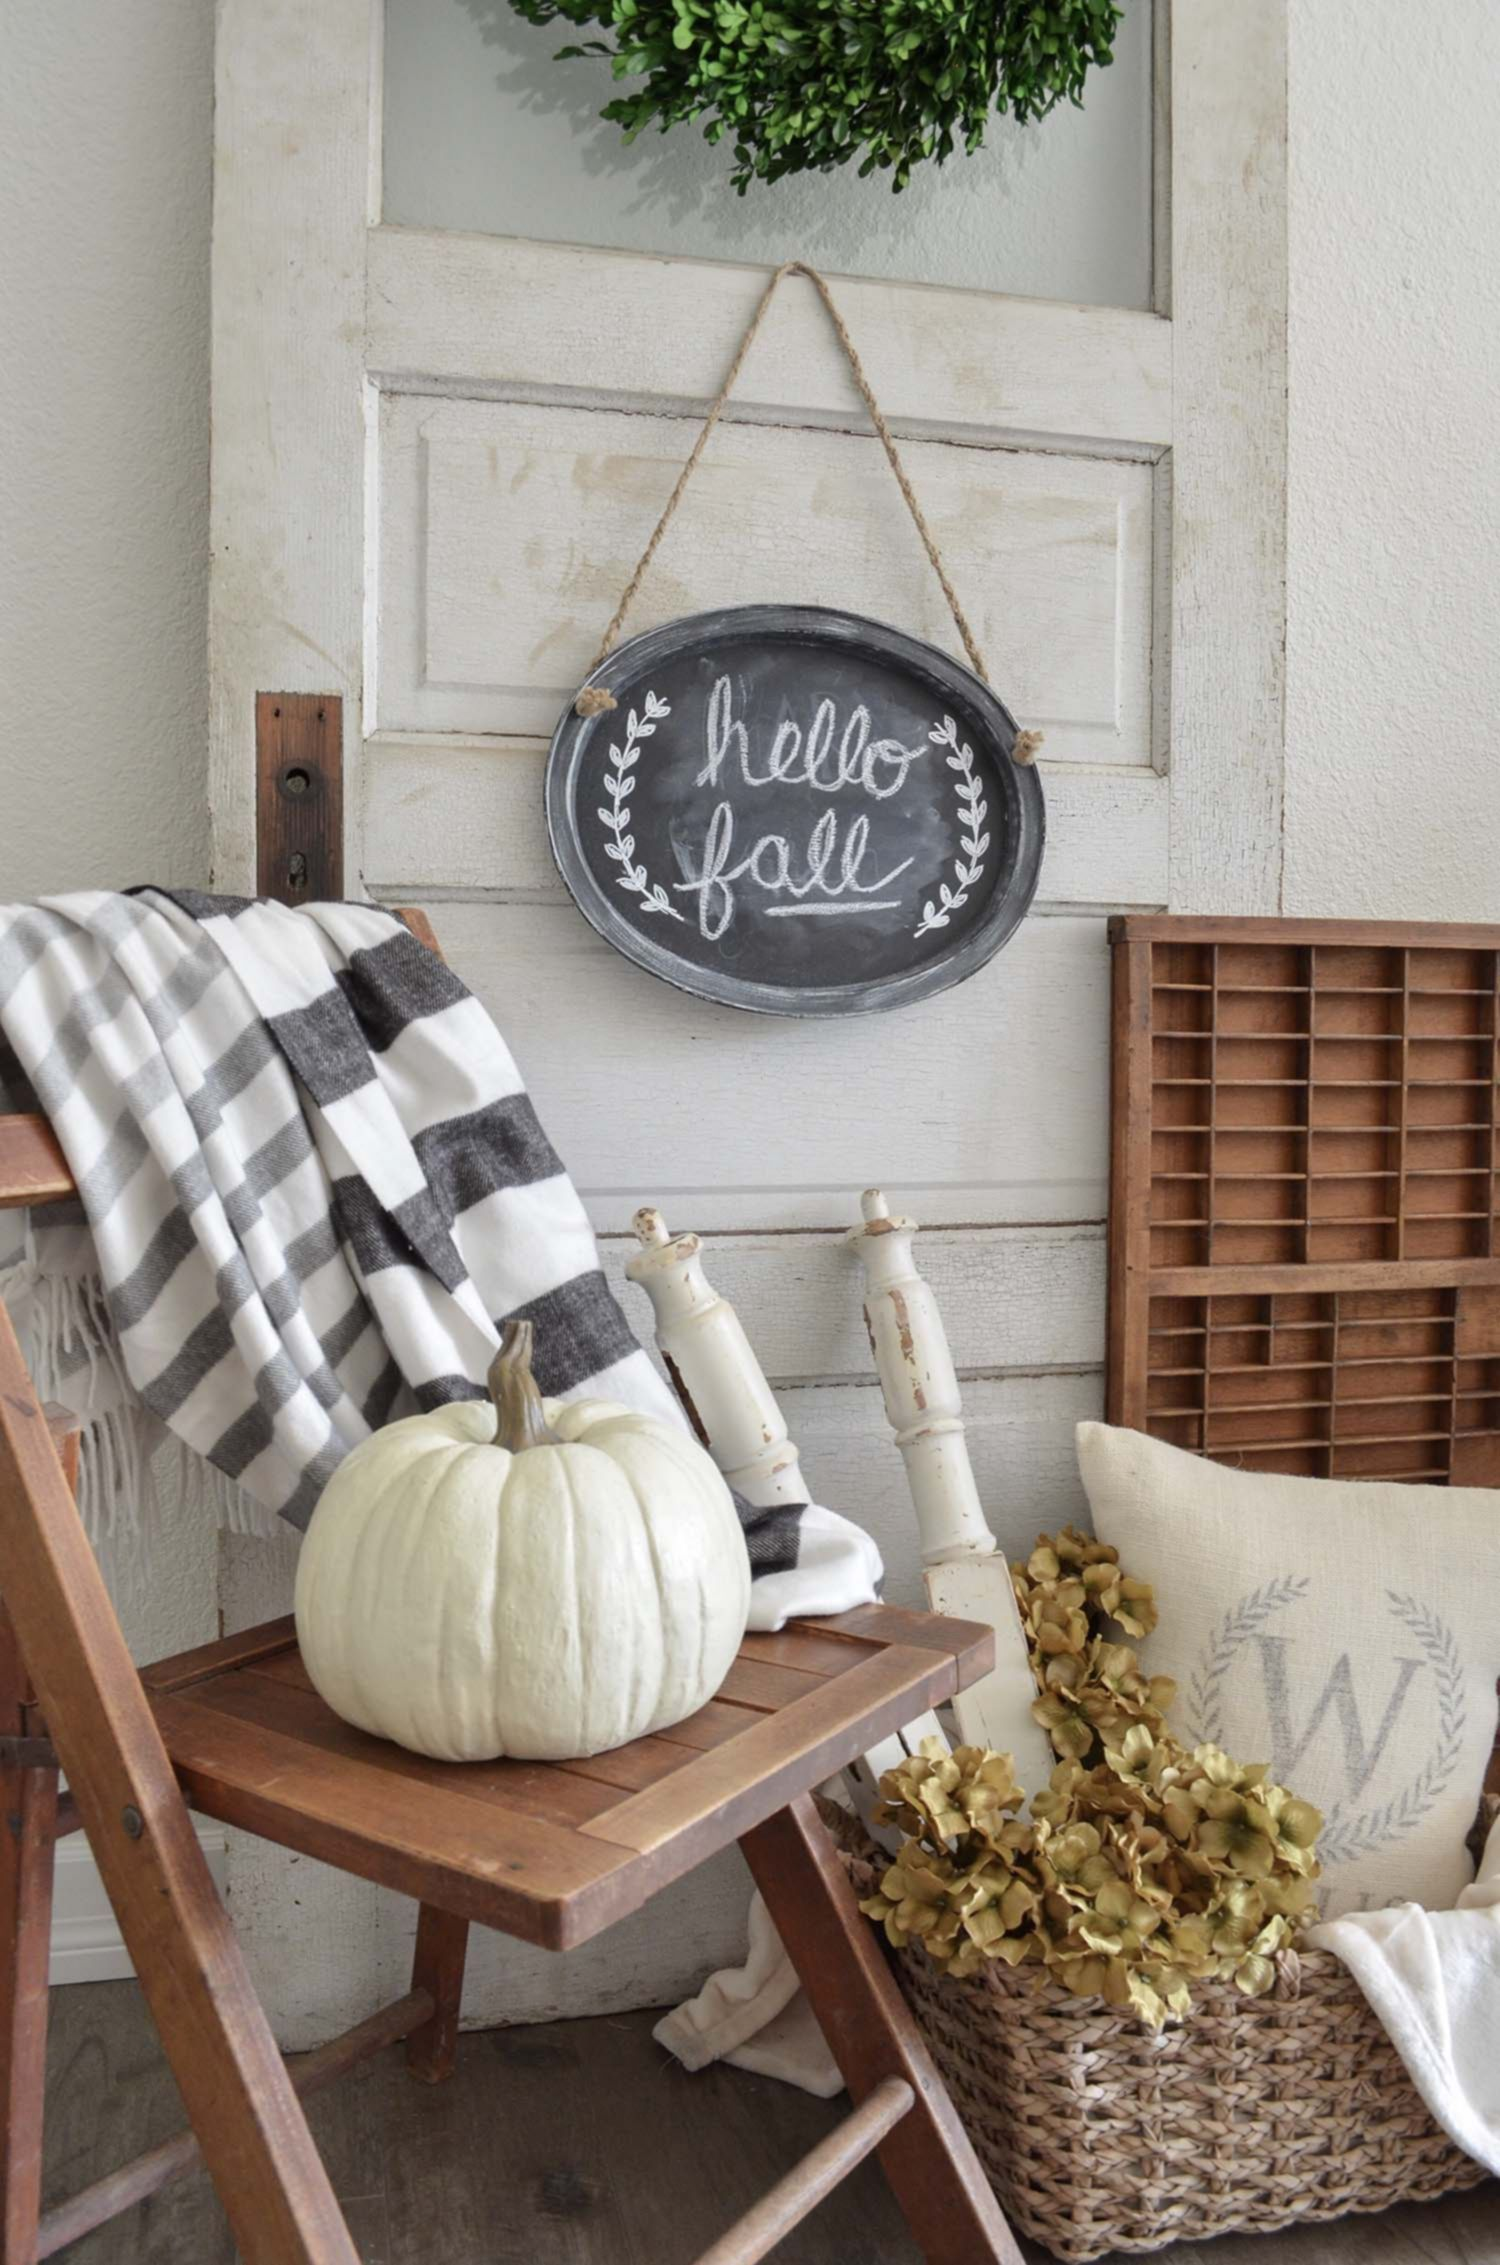 9 Fall Farmhouse Decorating Ideas To Inspire YouA World of Ideas  A World of Ideas was a PBS miniseries (1988 and 1990) by Bill Moyers. It featured notable interviews with such personalities as Isaac Asimov, Noam Chomsky, Elaine Pagels, and Chungliang Al Huang.